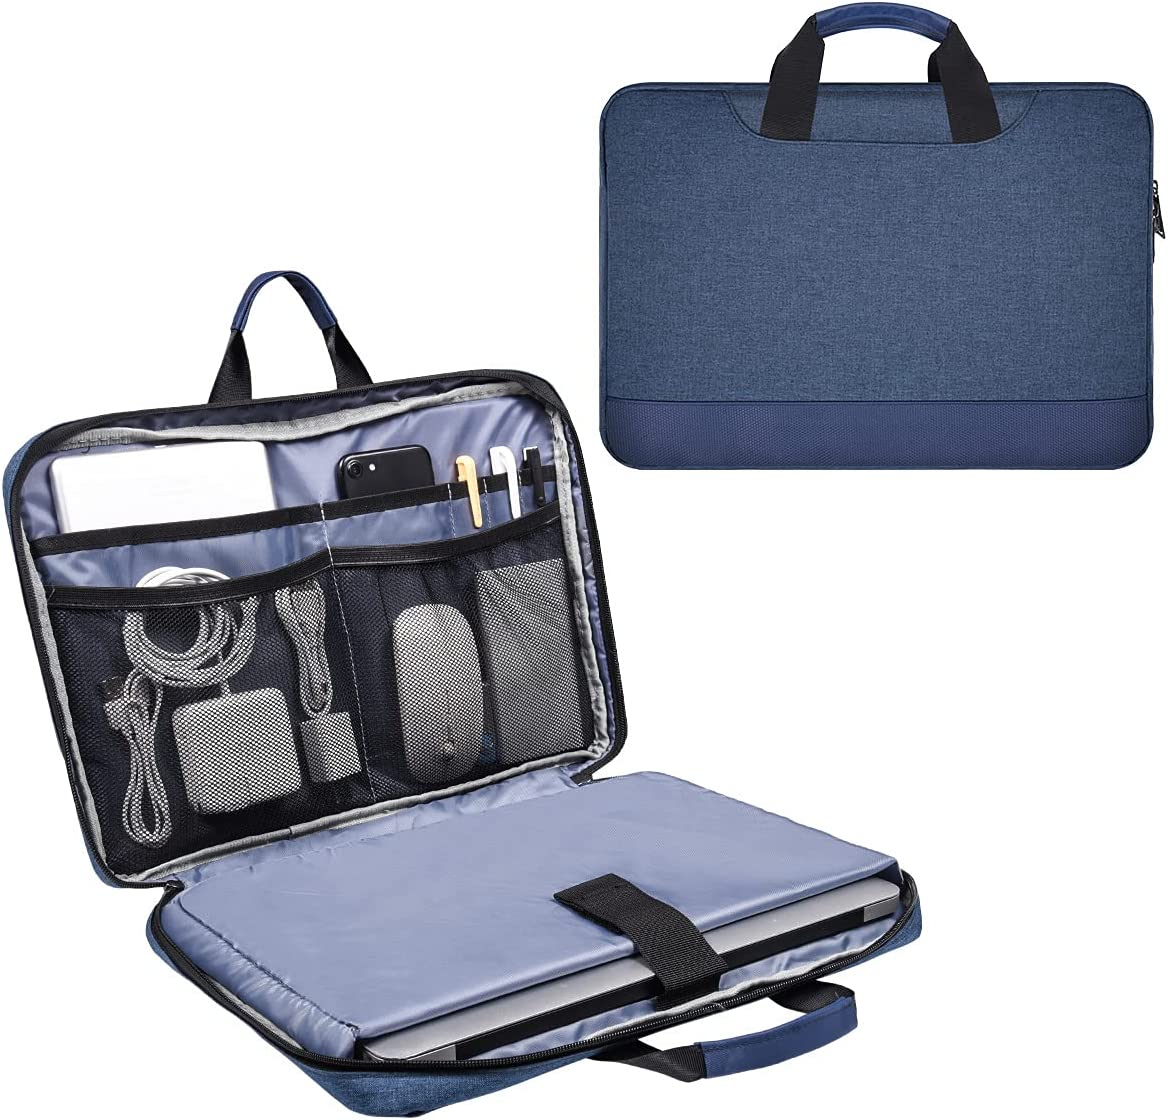 Price reduction Opening large release sale 15.6 Inch Waterproof Laptop Sleeve with Bag Women Men Briefcase